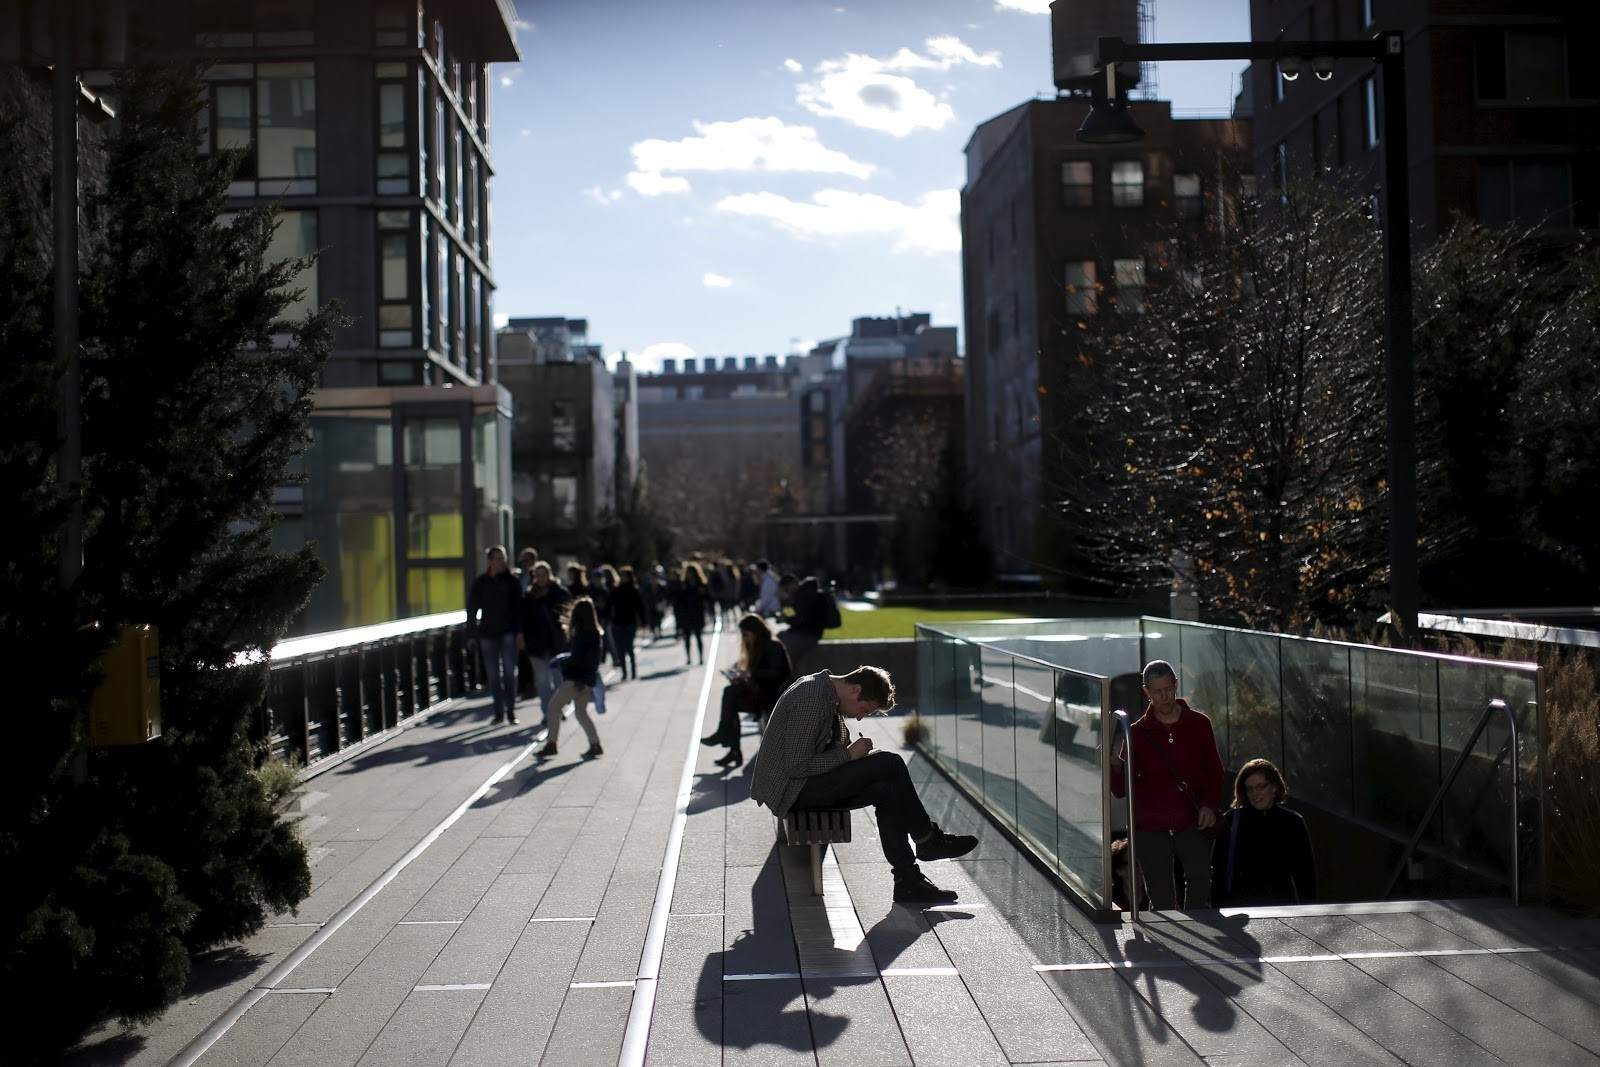 The High Line park runs for 2.4 km above the streets of New York.